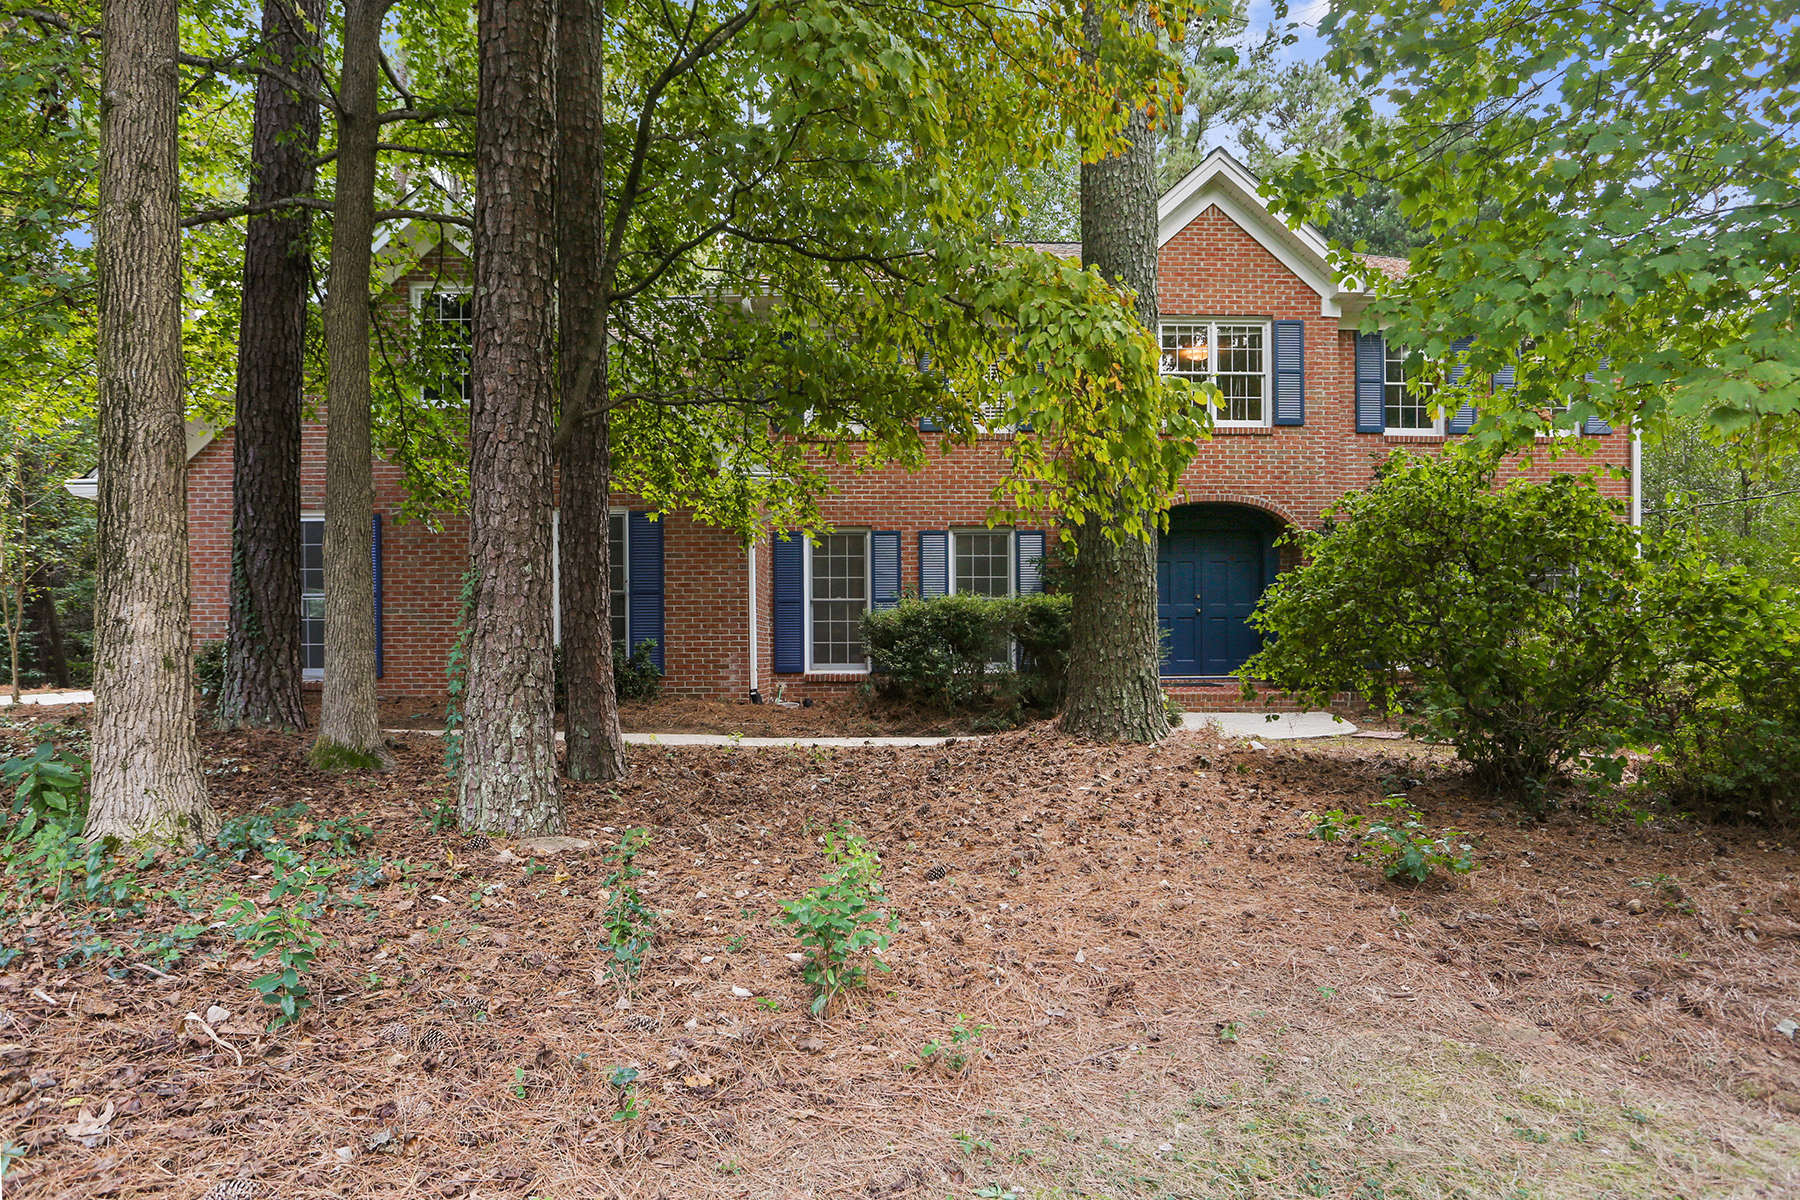 Single Family Home for Sale at Classic Spalding Woods Brick Traditional Home With Endless Possibilities! 5 Messina Way Sandy Springs, Georgia 30328 United States